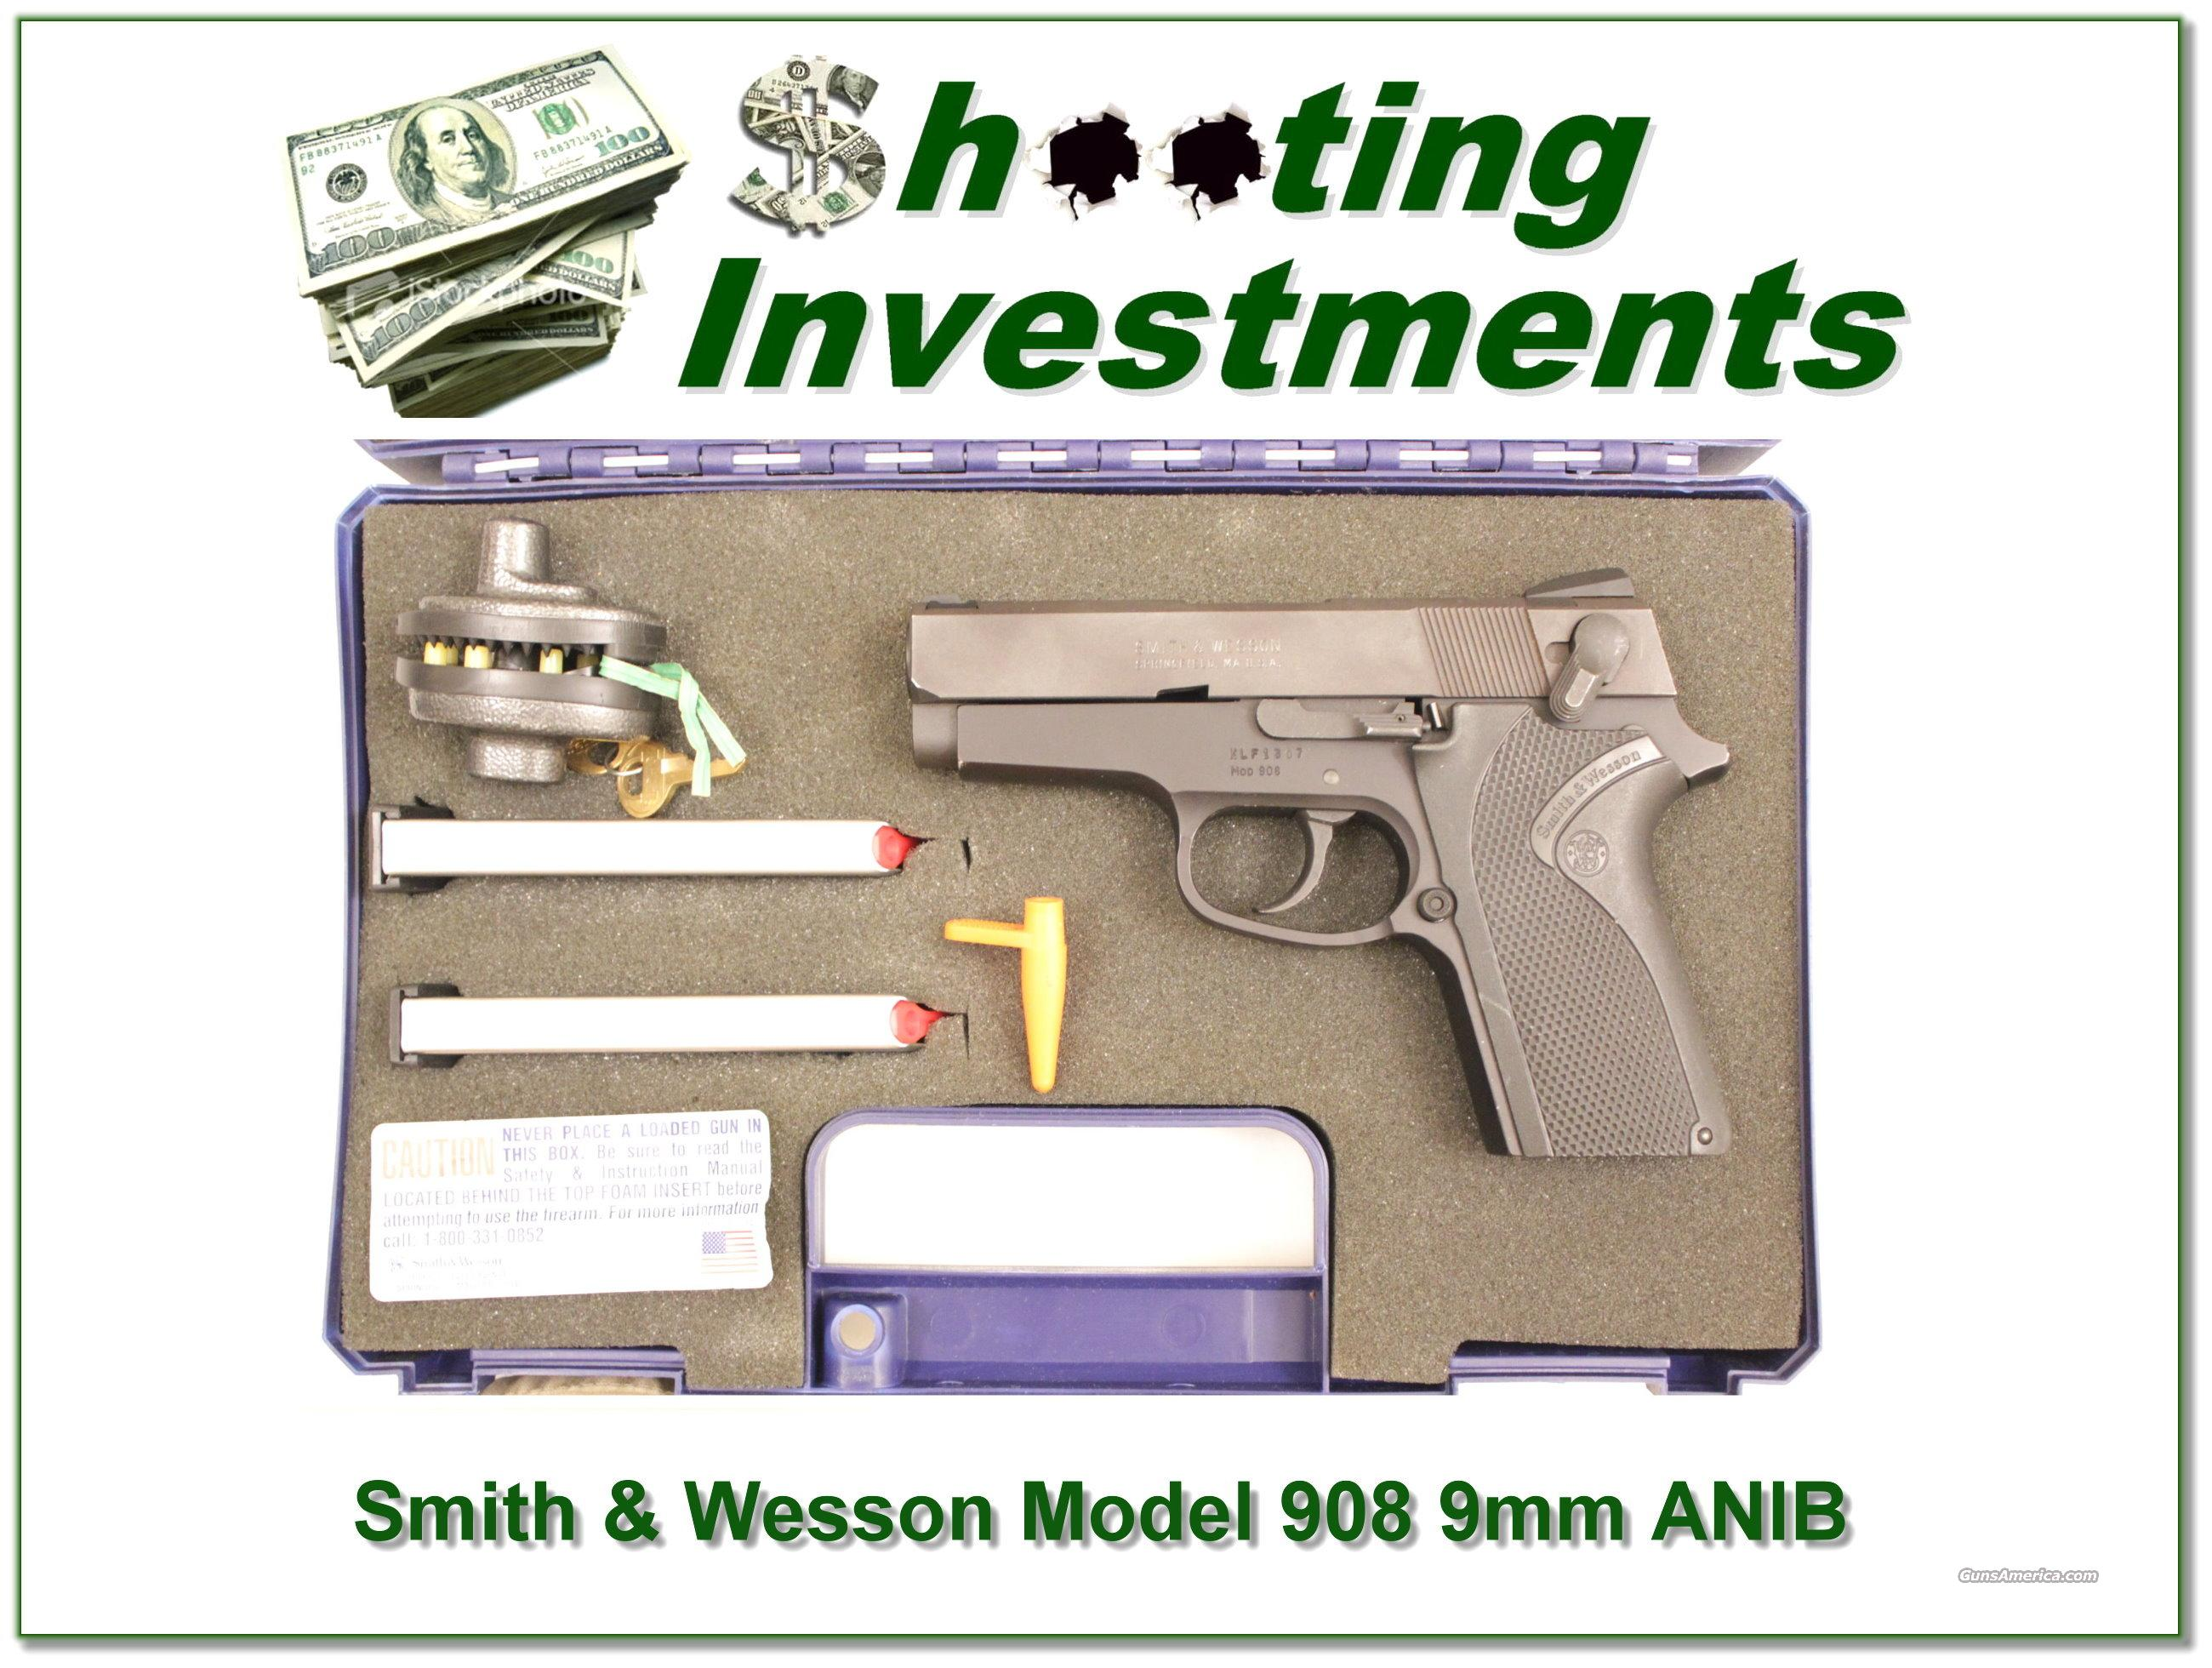 Smith & Wesson Model 908 9mm  Guns > Pistols > Smith & Wesson Pistols - Autos > Alloy Frame